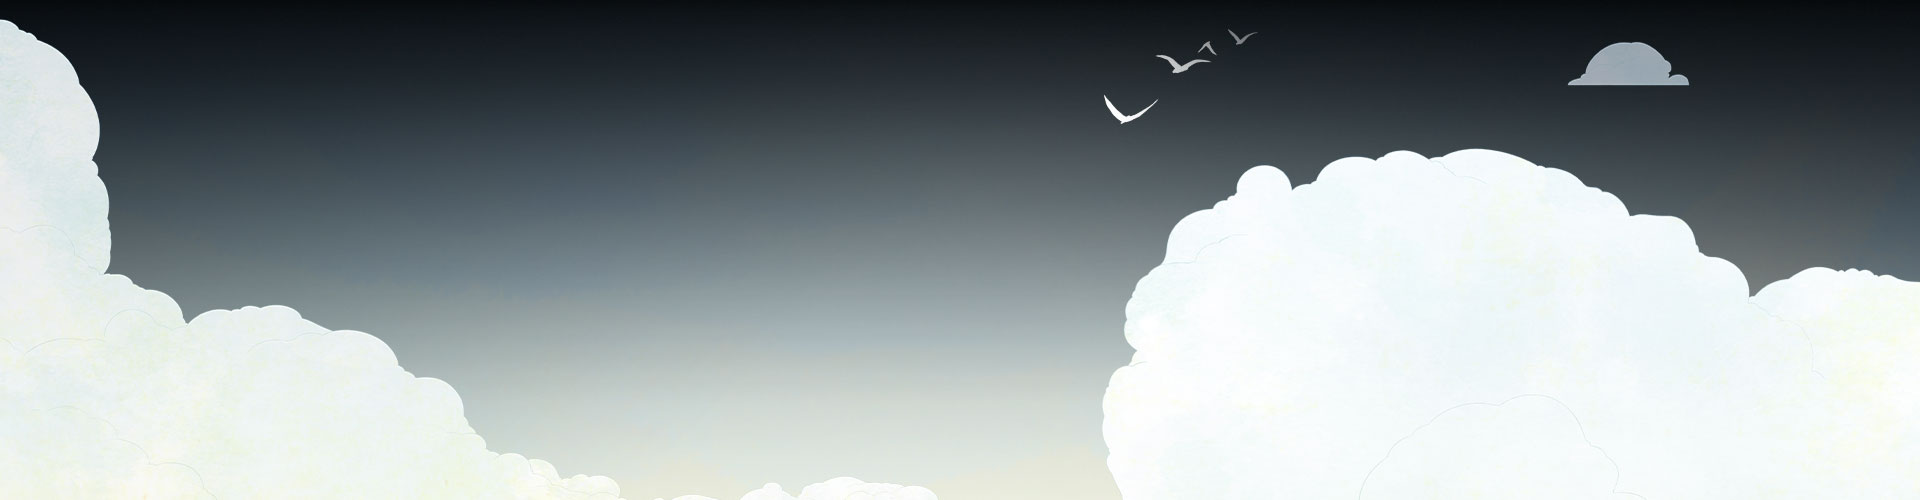 Background of clouds and birds flying away